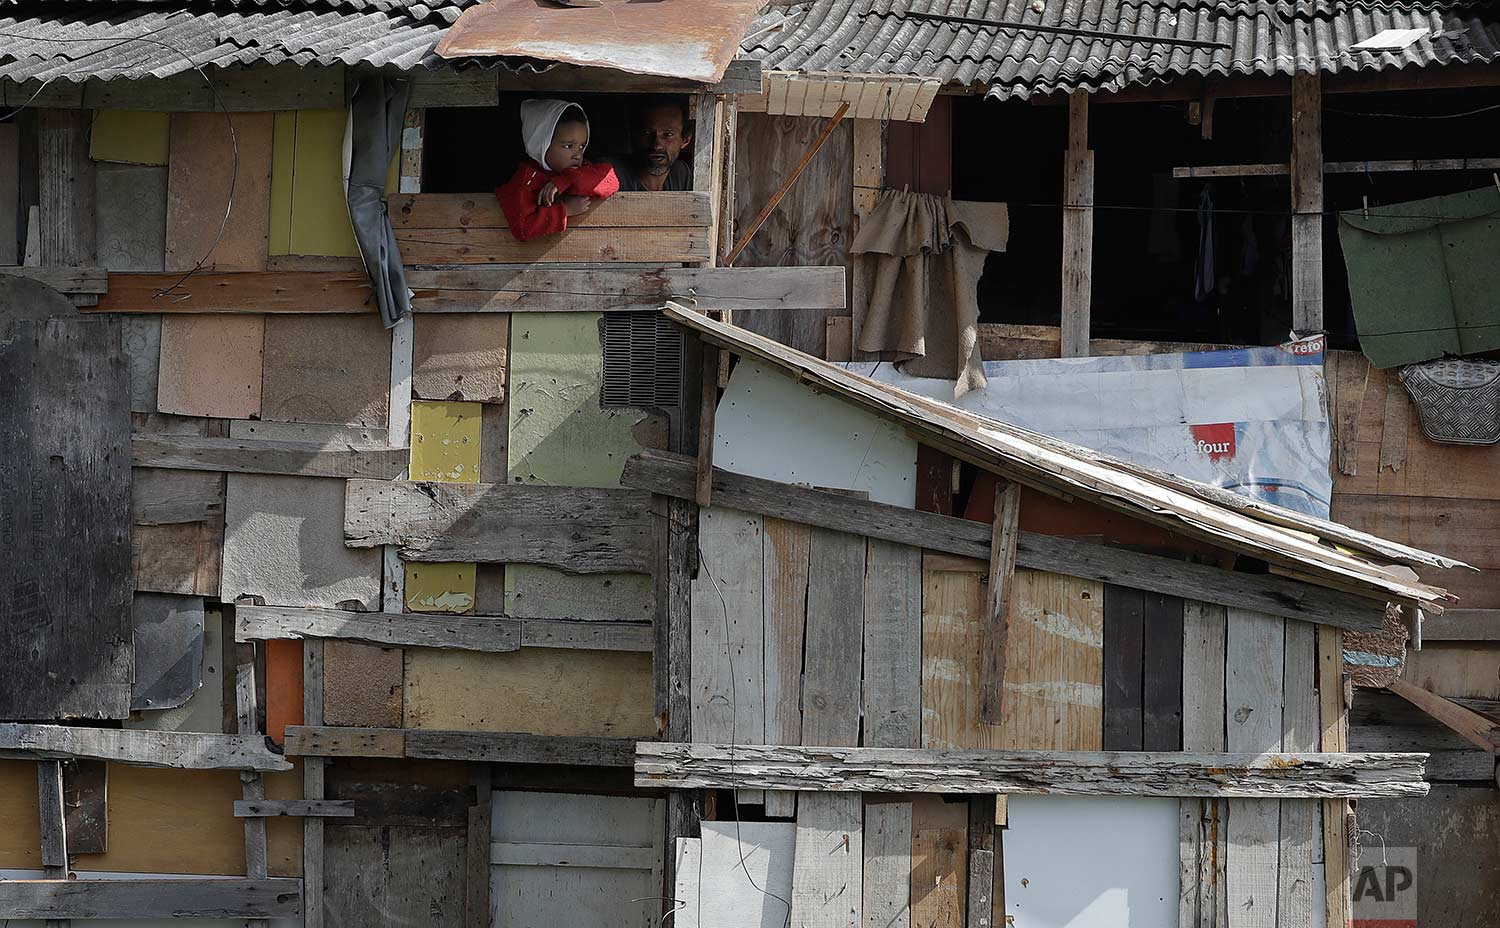 A boy peers from his home's window as firefighters put out the last flames of a nearby fire in Osasco in the greater Sao Paulo area of Brazil, Monday, July 3, 2017.  (AP Photo/Andre Penner)